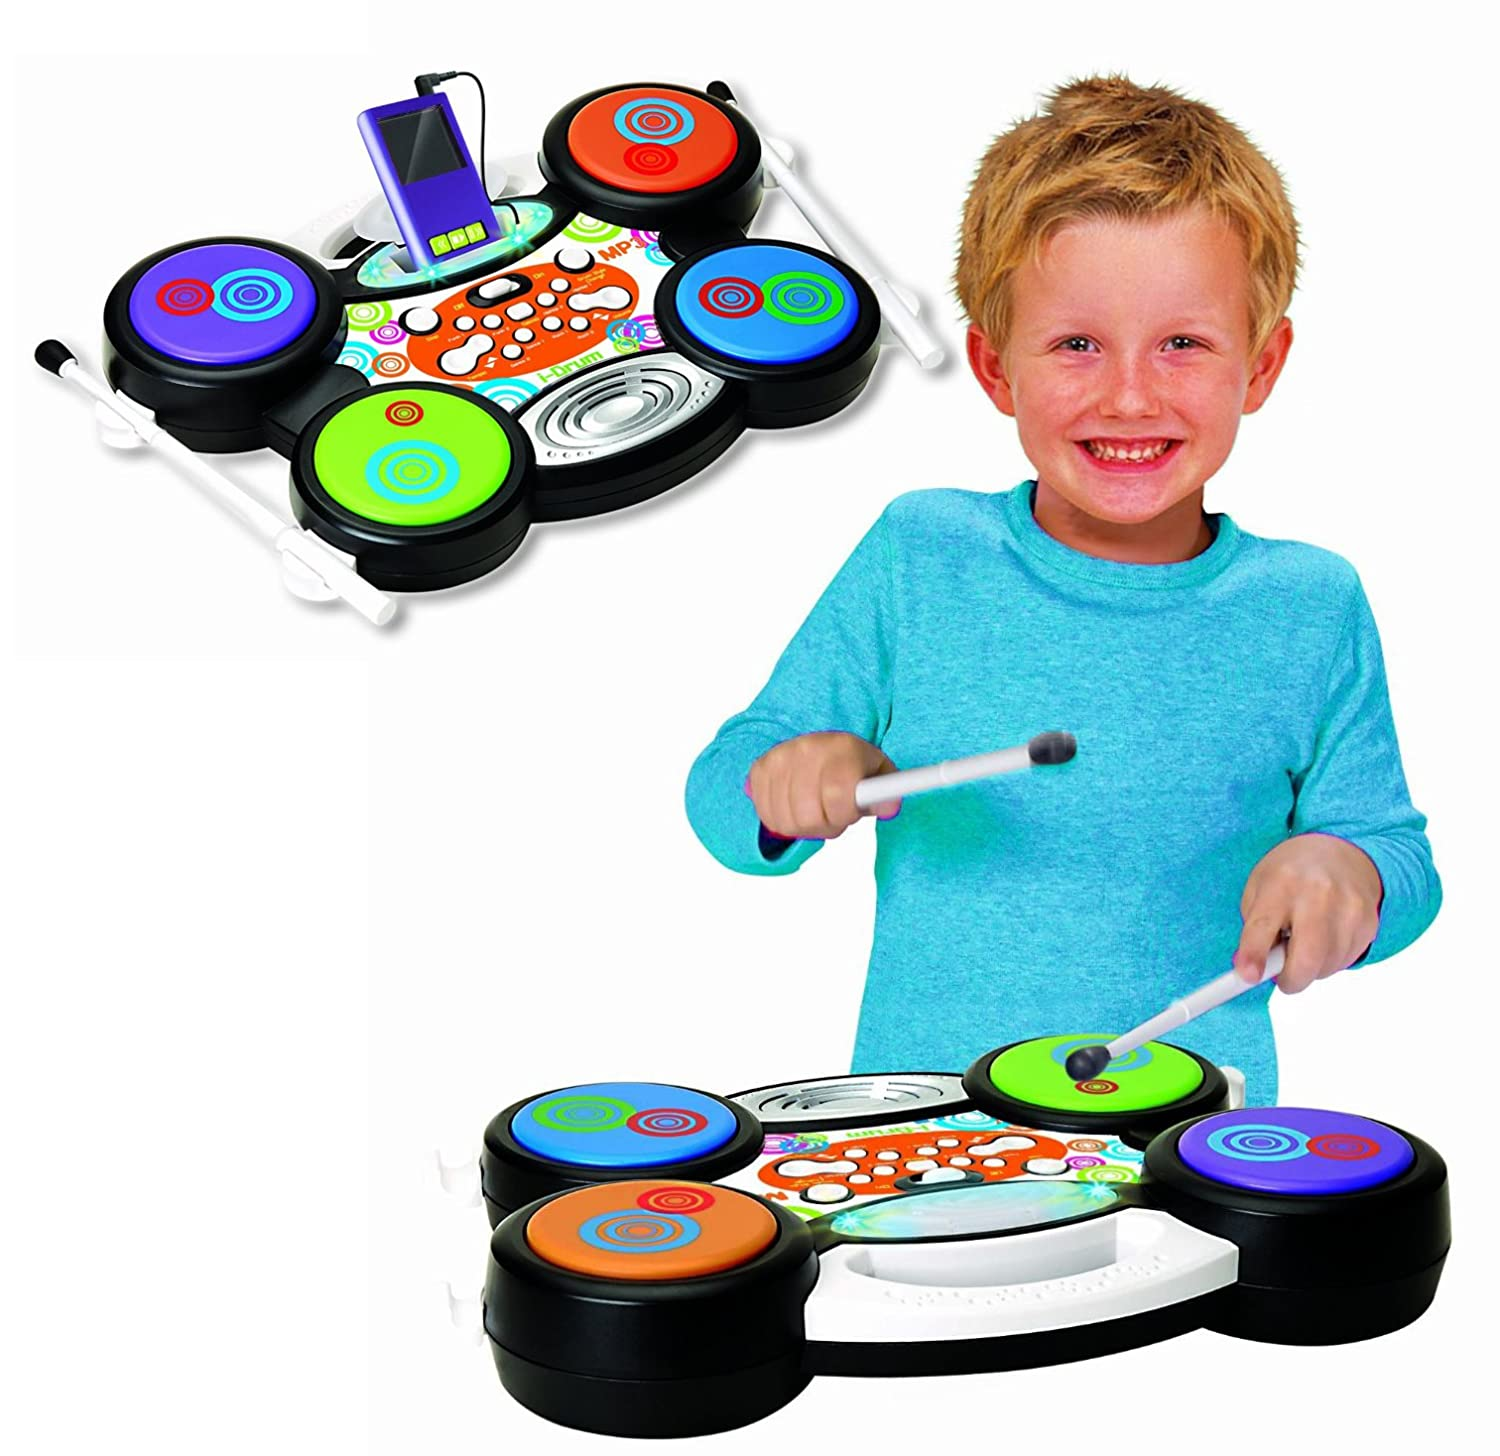 Electronic Toys For Boys : Amazing electronic toys for boys pics children ideas